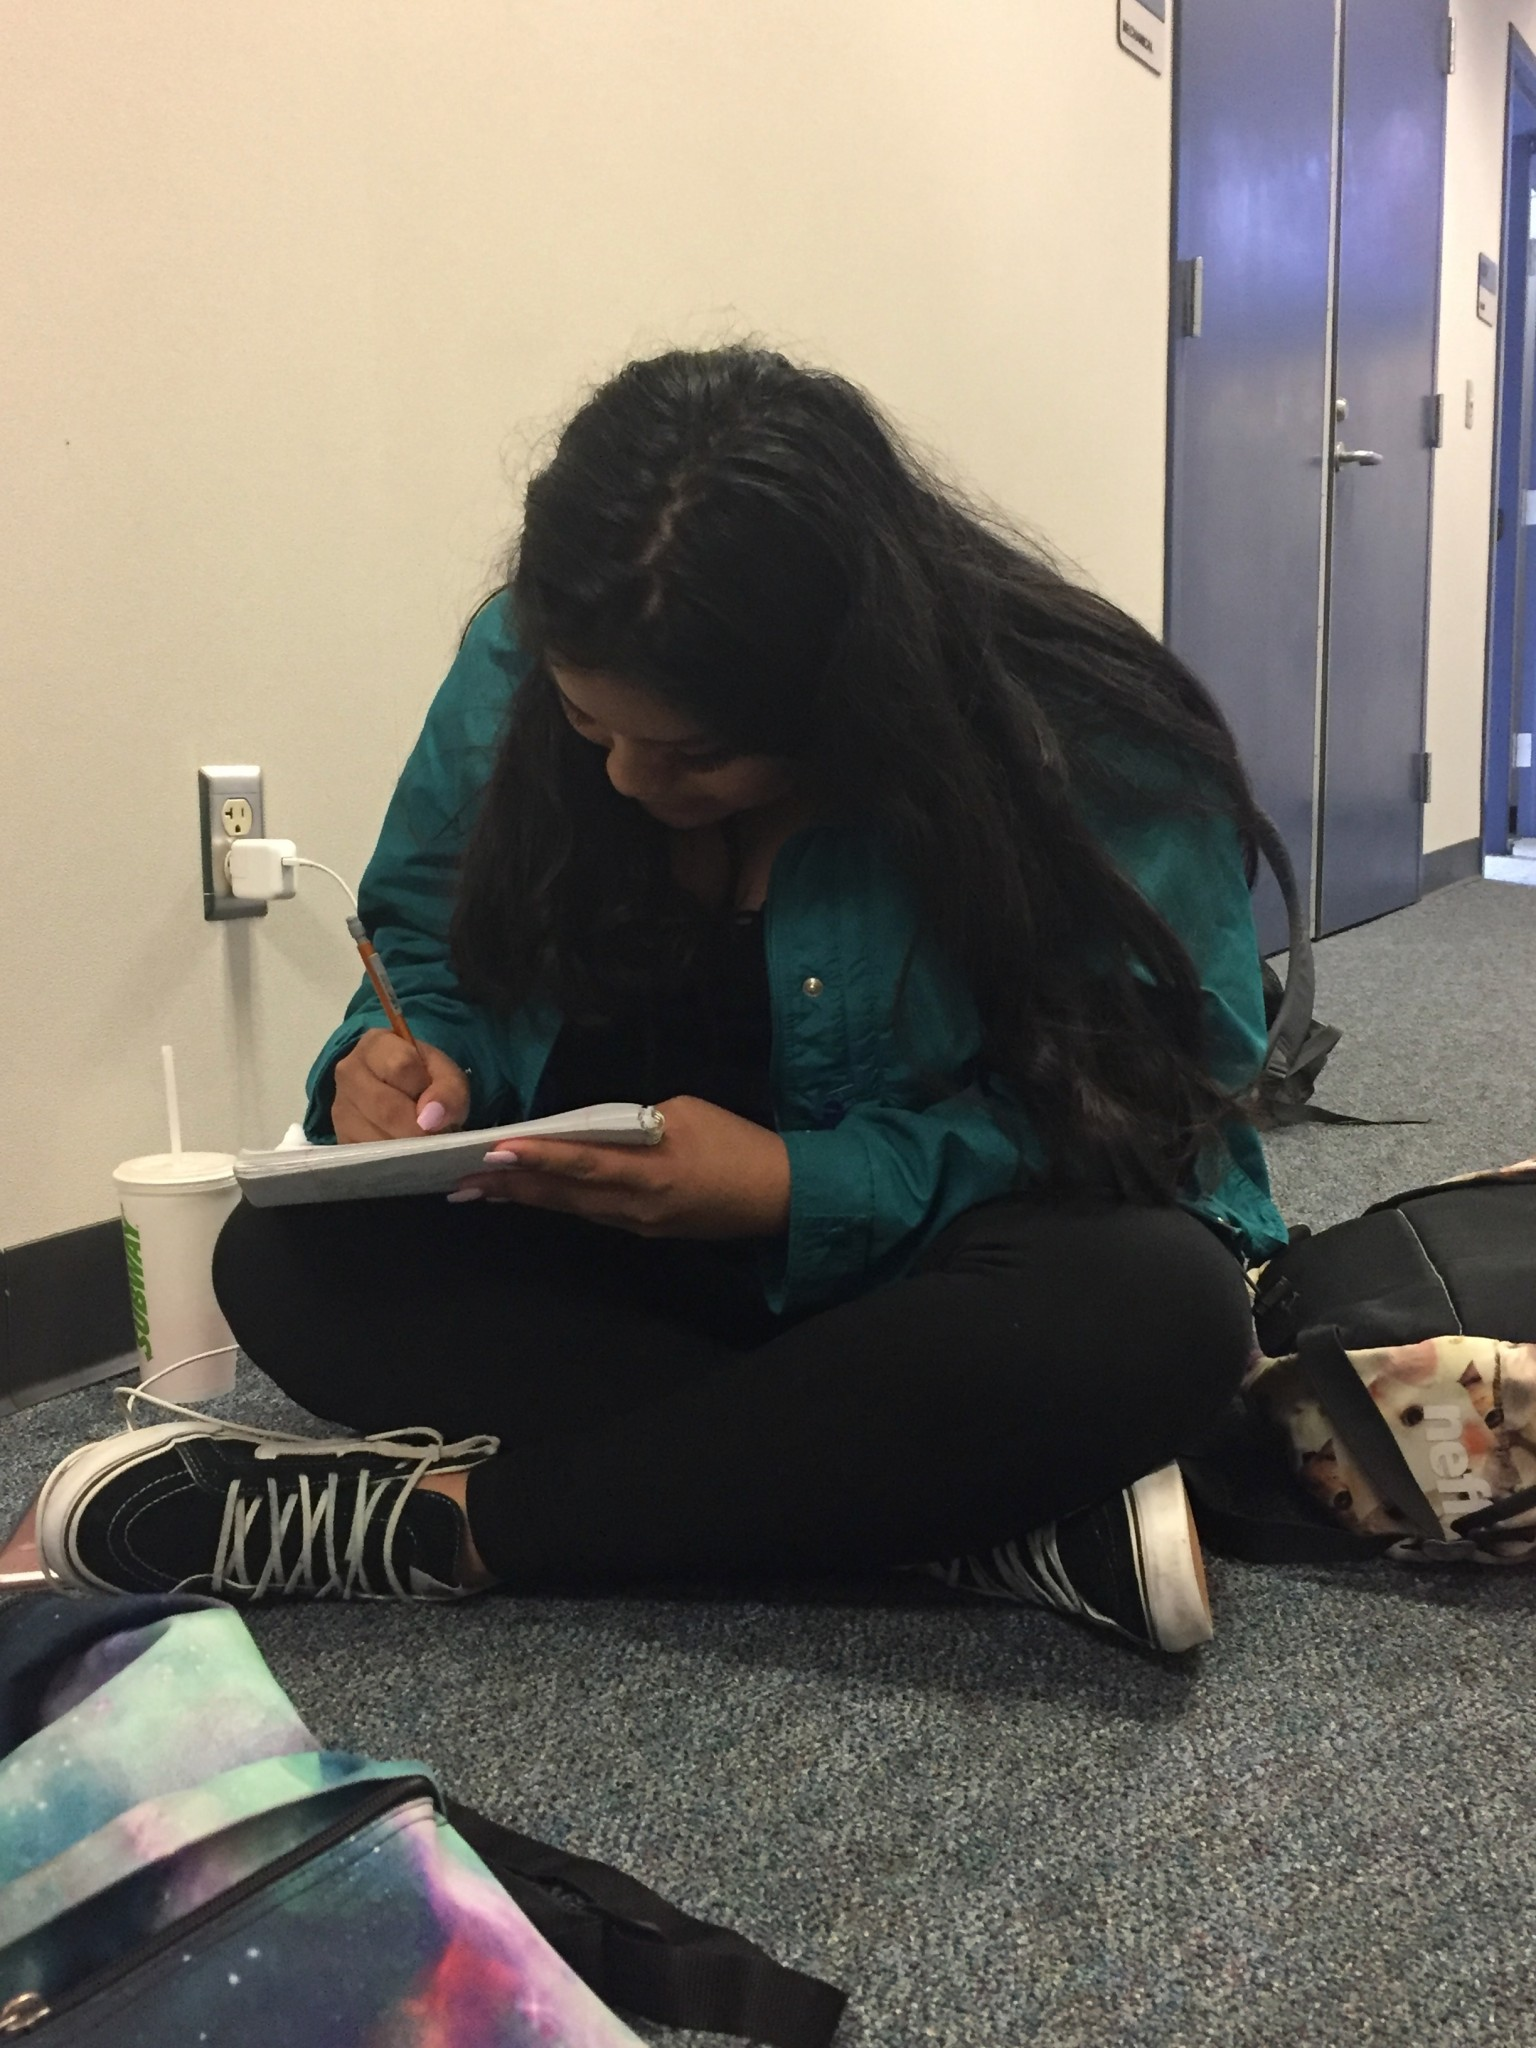 Senior, Ruth Bernardino, was upstairs in the Science hallway working on her Math PAK.